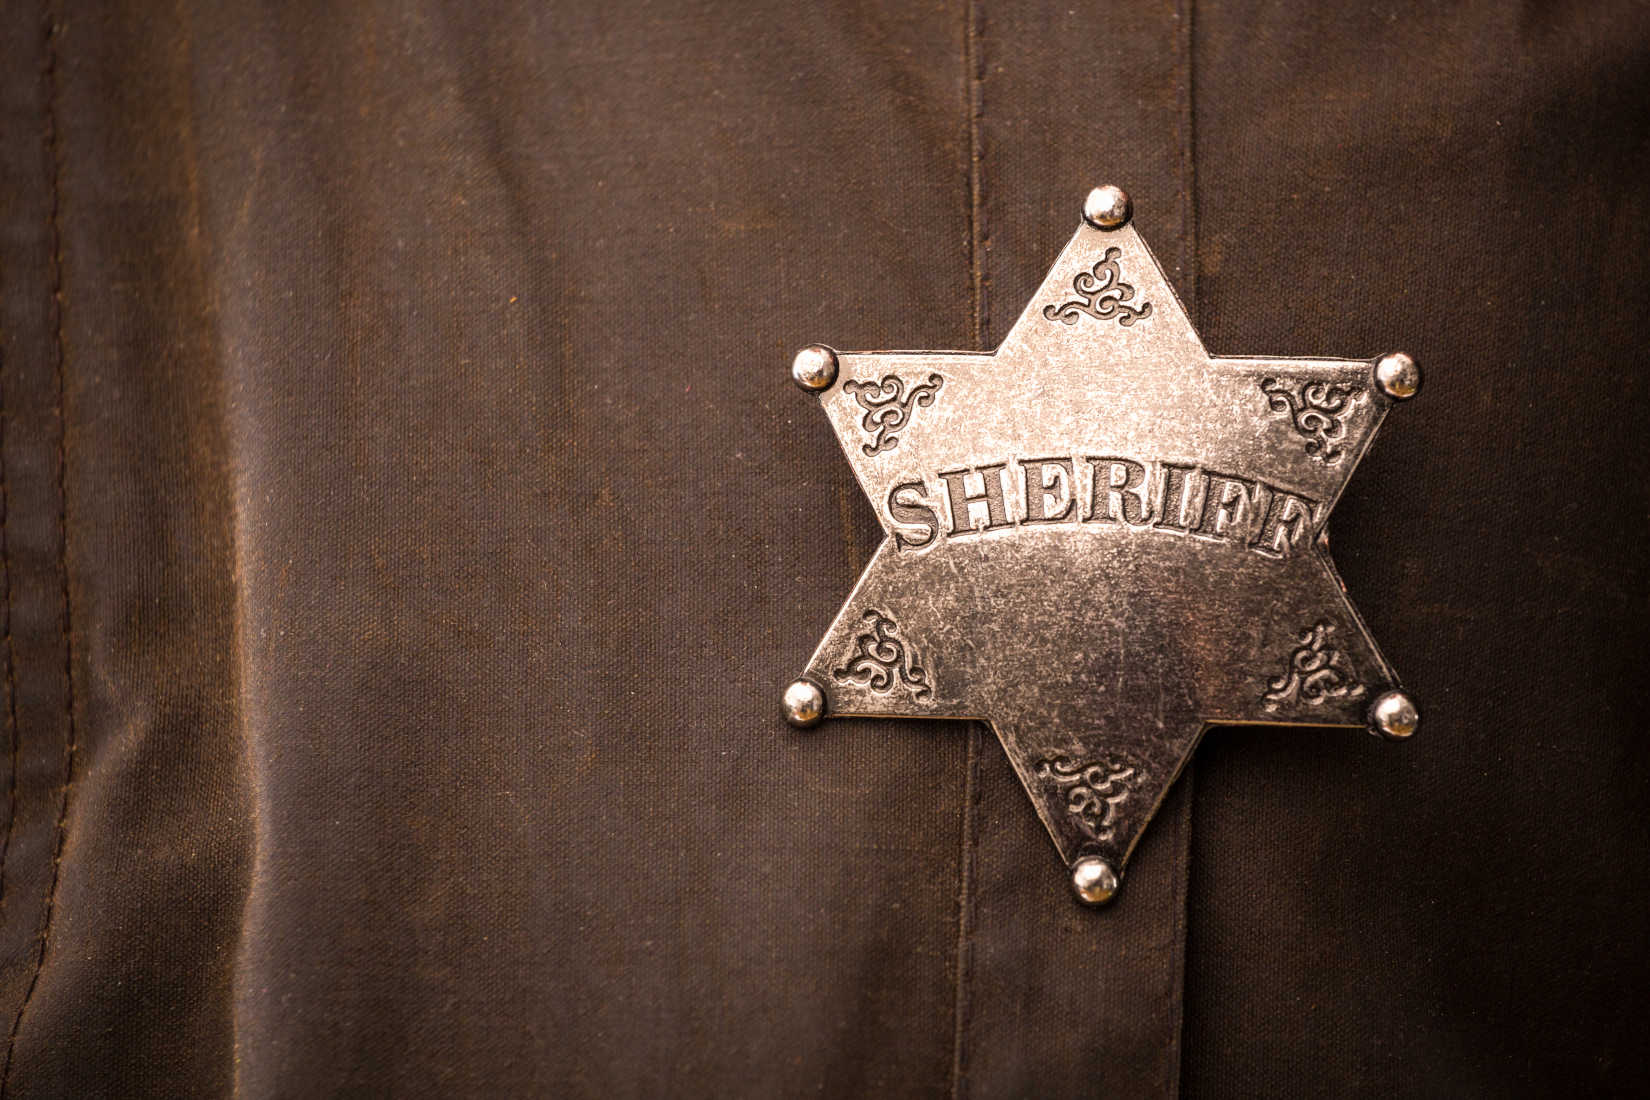 Indiana Sheriff: I Will Not Enforce Laws That Violate the Second Amendment